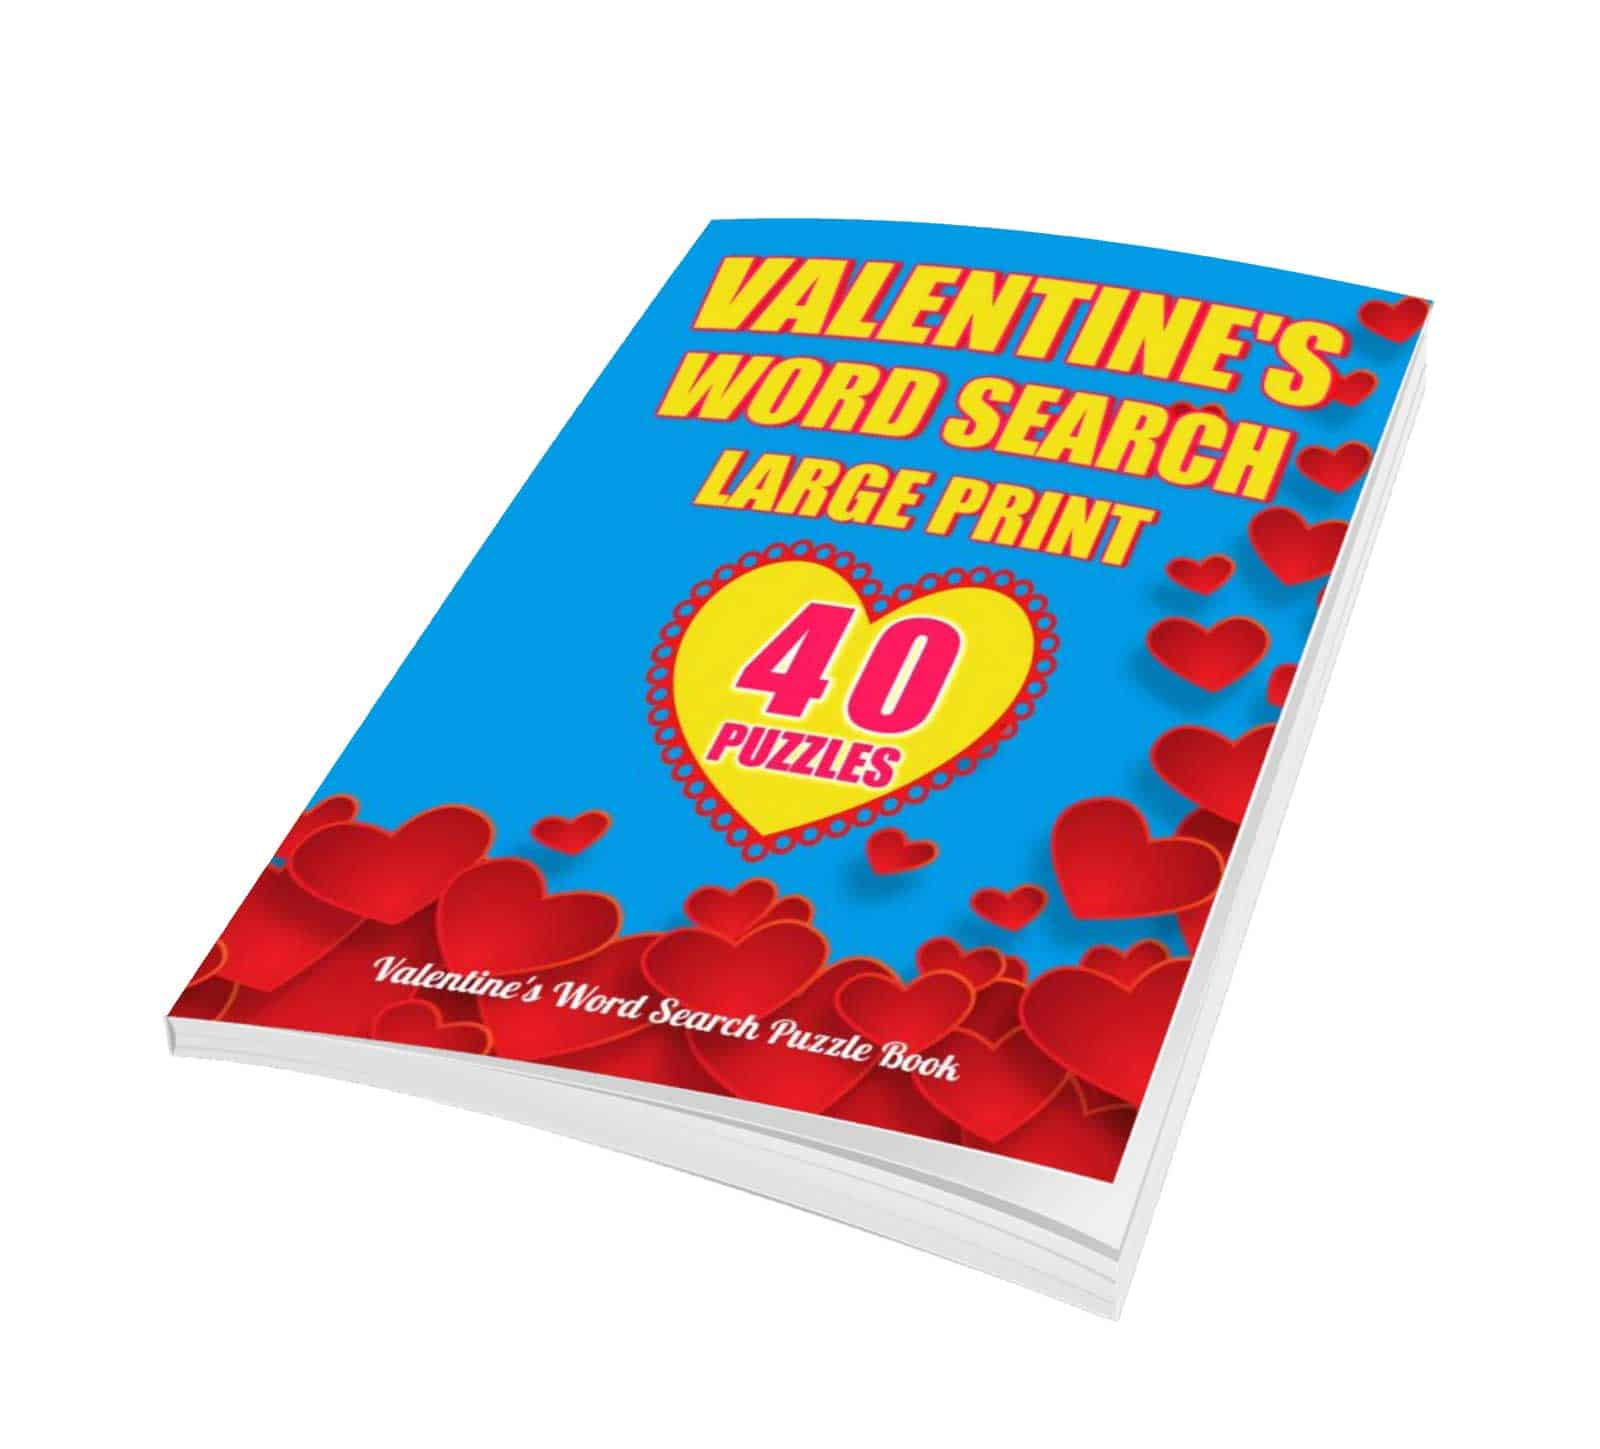 large print valentine word search